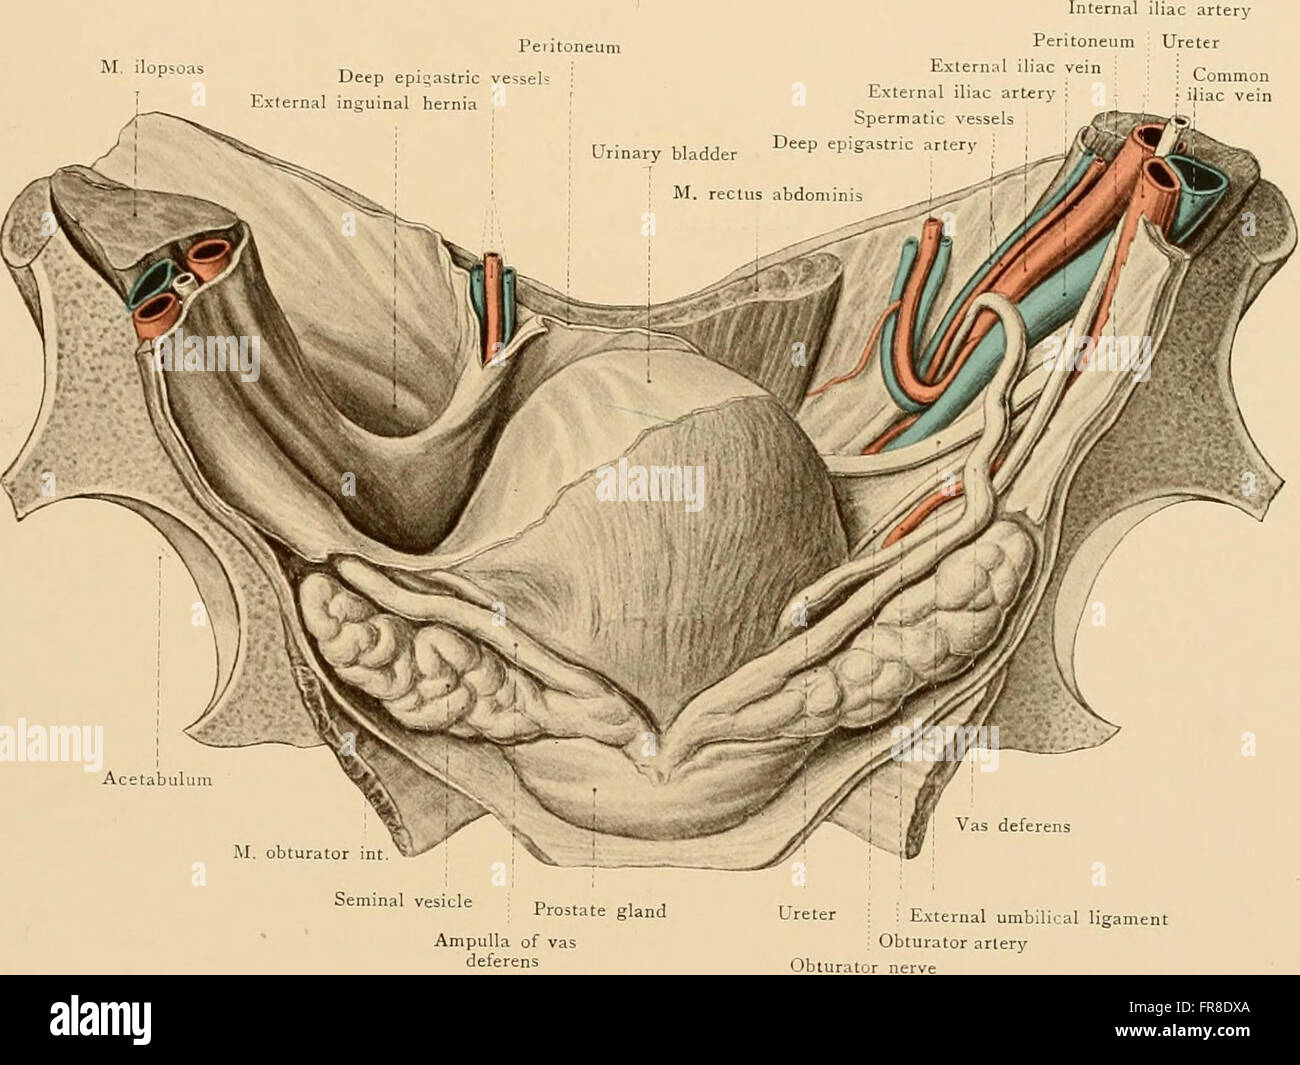 Attractive Epigastric Vessels Anatomy Mold - Human Anatomy Images ...